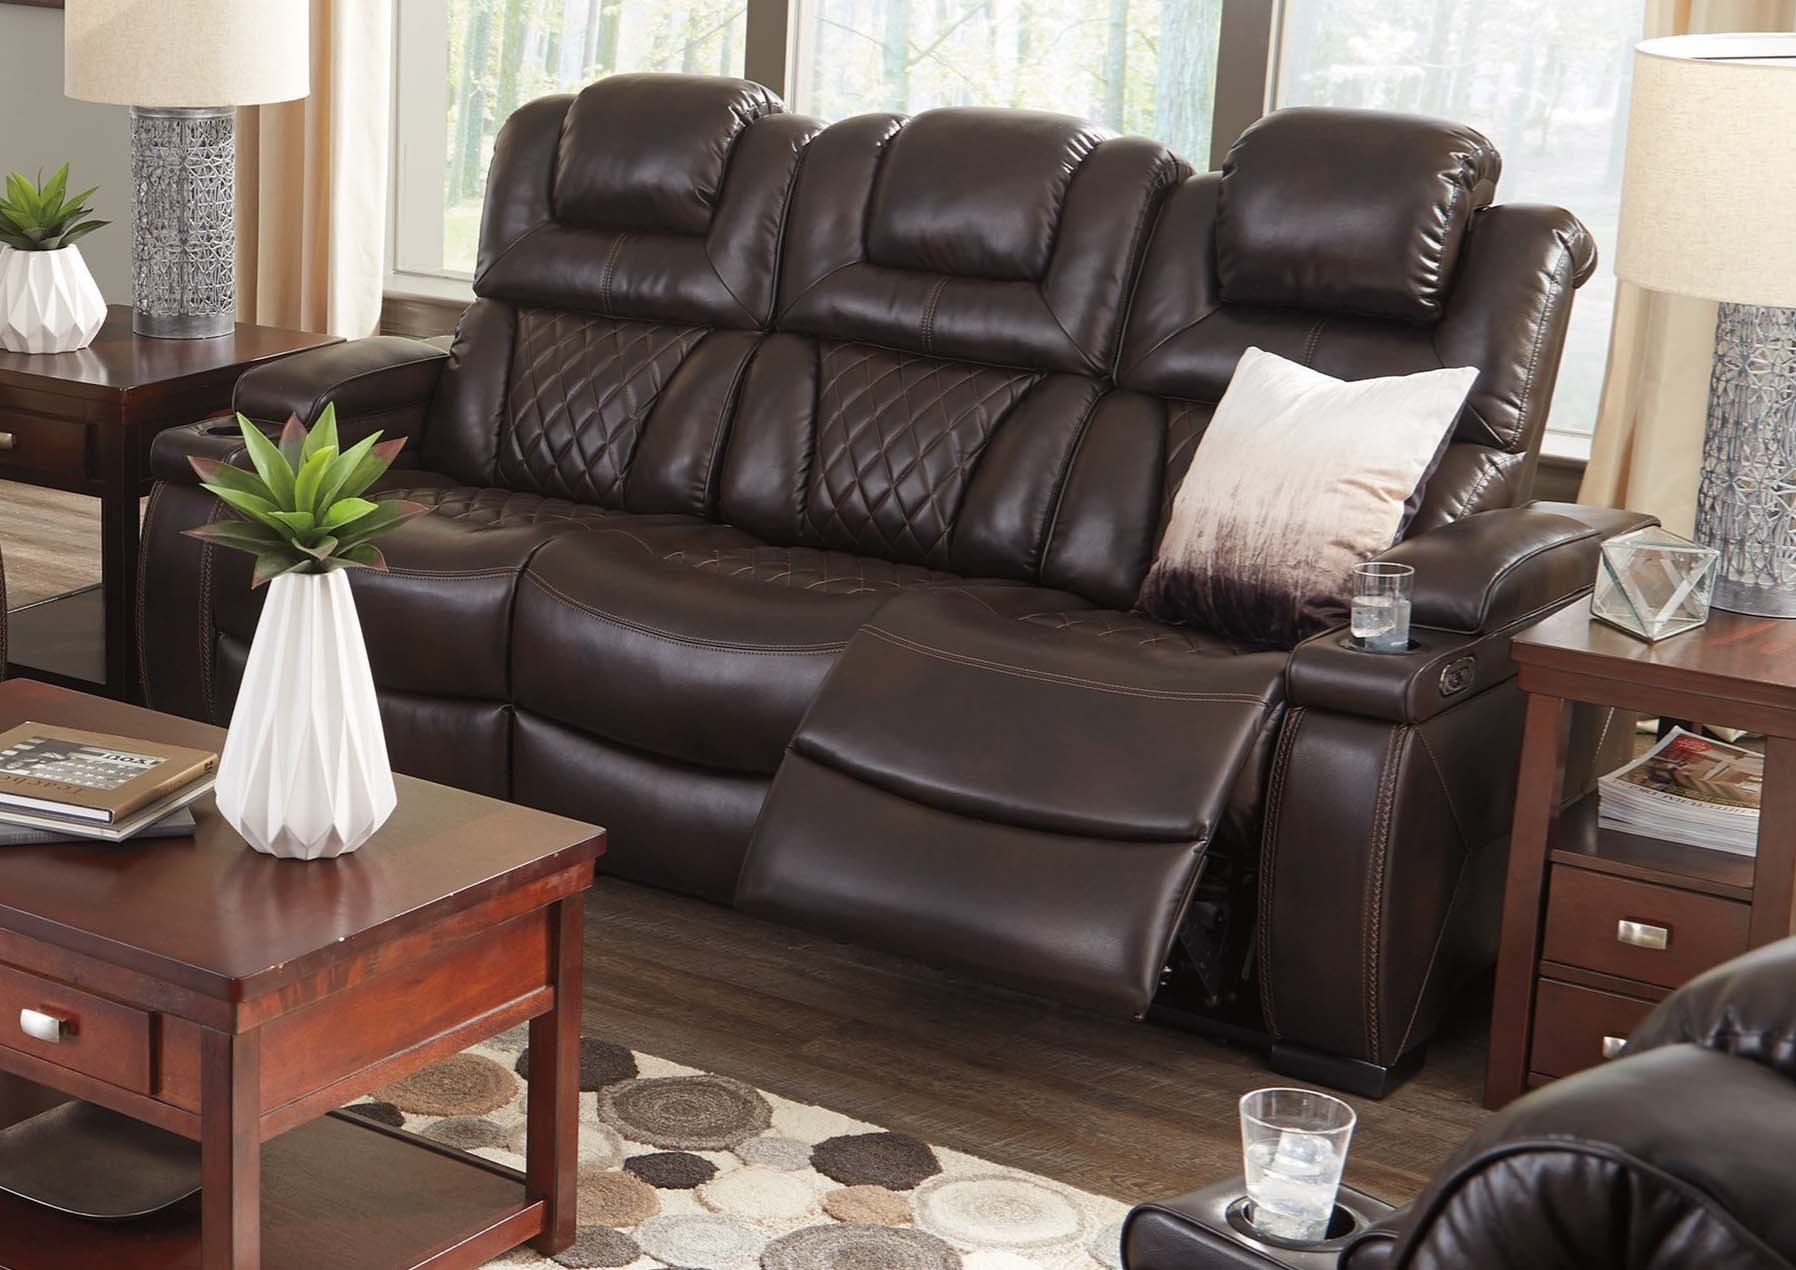 Furniture Stores In Denver Co Royal Furniture Memphis Nashville Jackson Birmingham